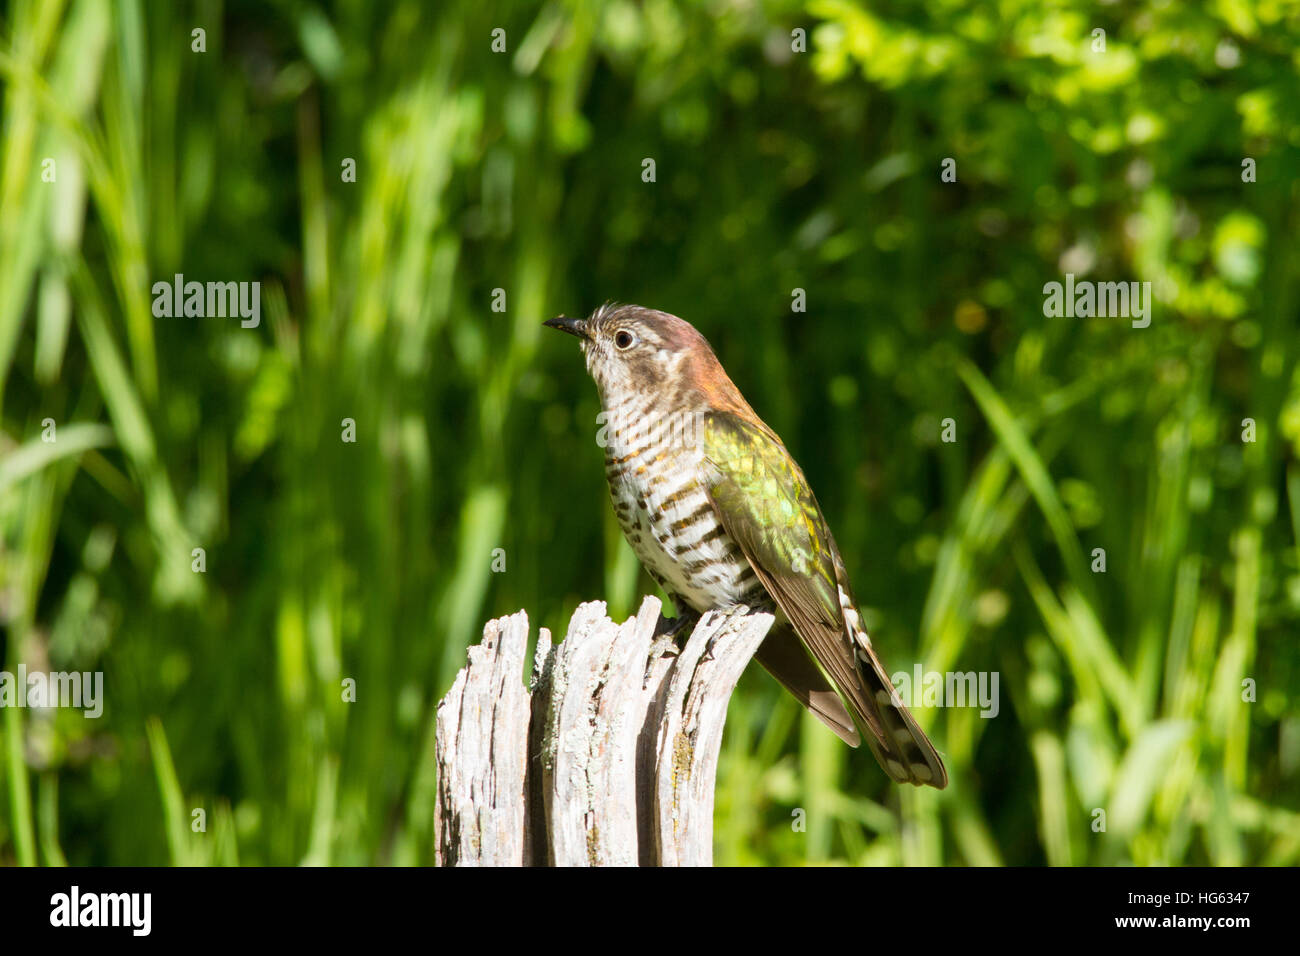 Shining Bronze-cuckoo (Chrysococcyx lucidus) Perched on a post - Stock Image